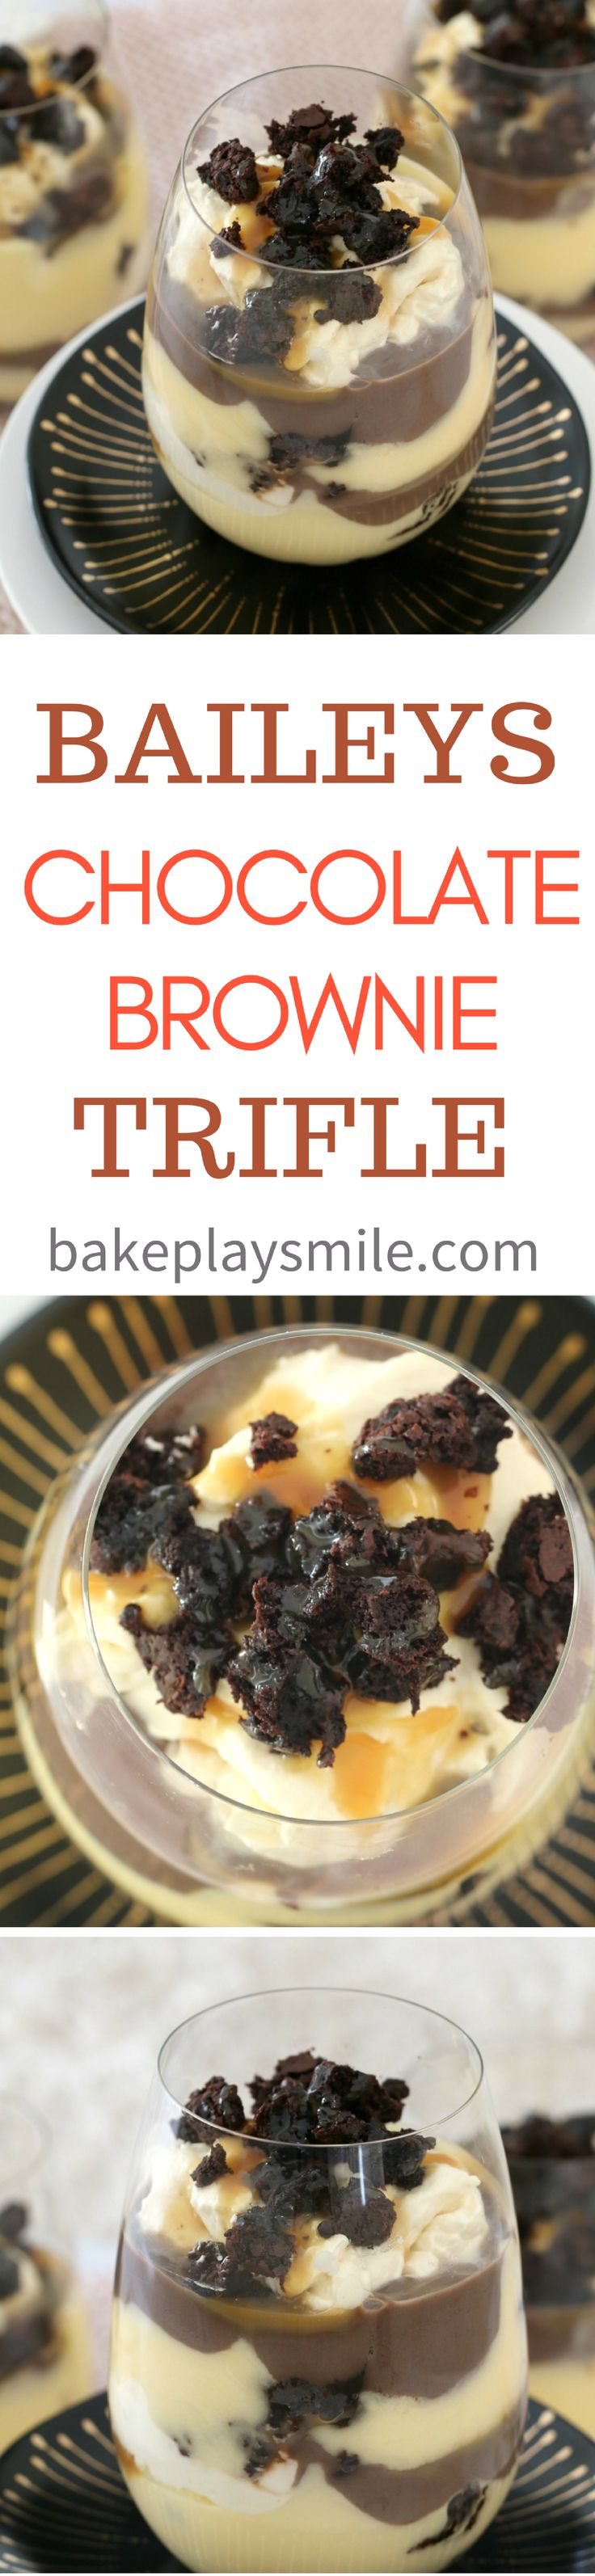 Baileys Chocolate Brownie Trifle The most decadent layered Baileys Chocolate Brownie Trifle – filled with rich chocolate brownie, vanilla custard, whipped cream, Baileys Irish Cream, chocolate custar (Chocolate Cream Candy)